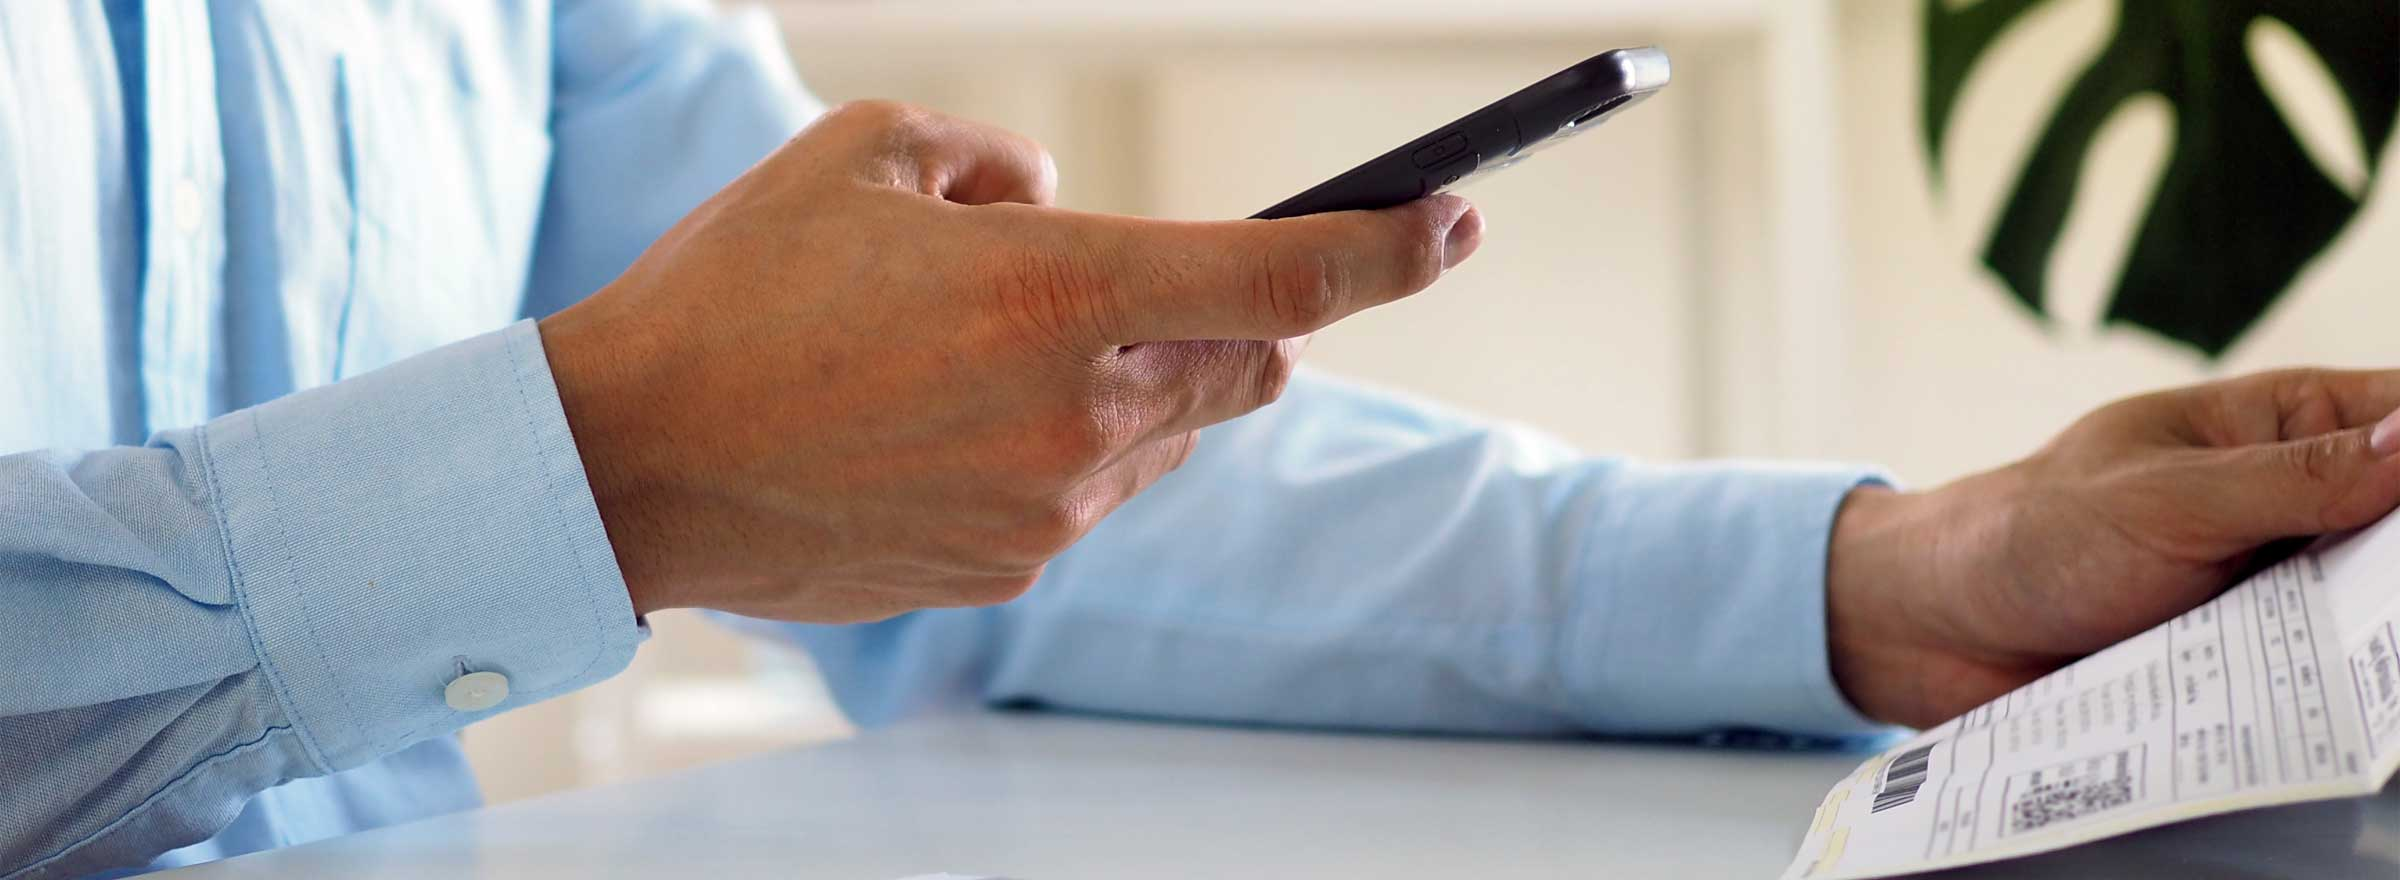 man's hands, one holding a document, the other on a smartphone